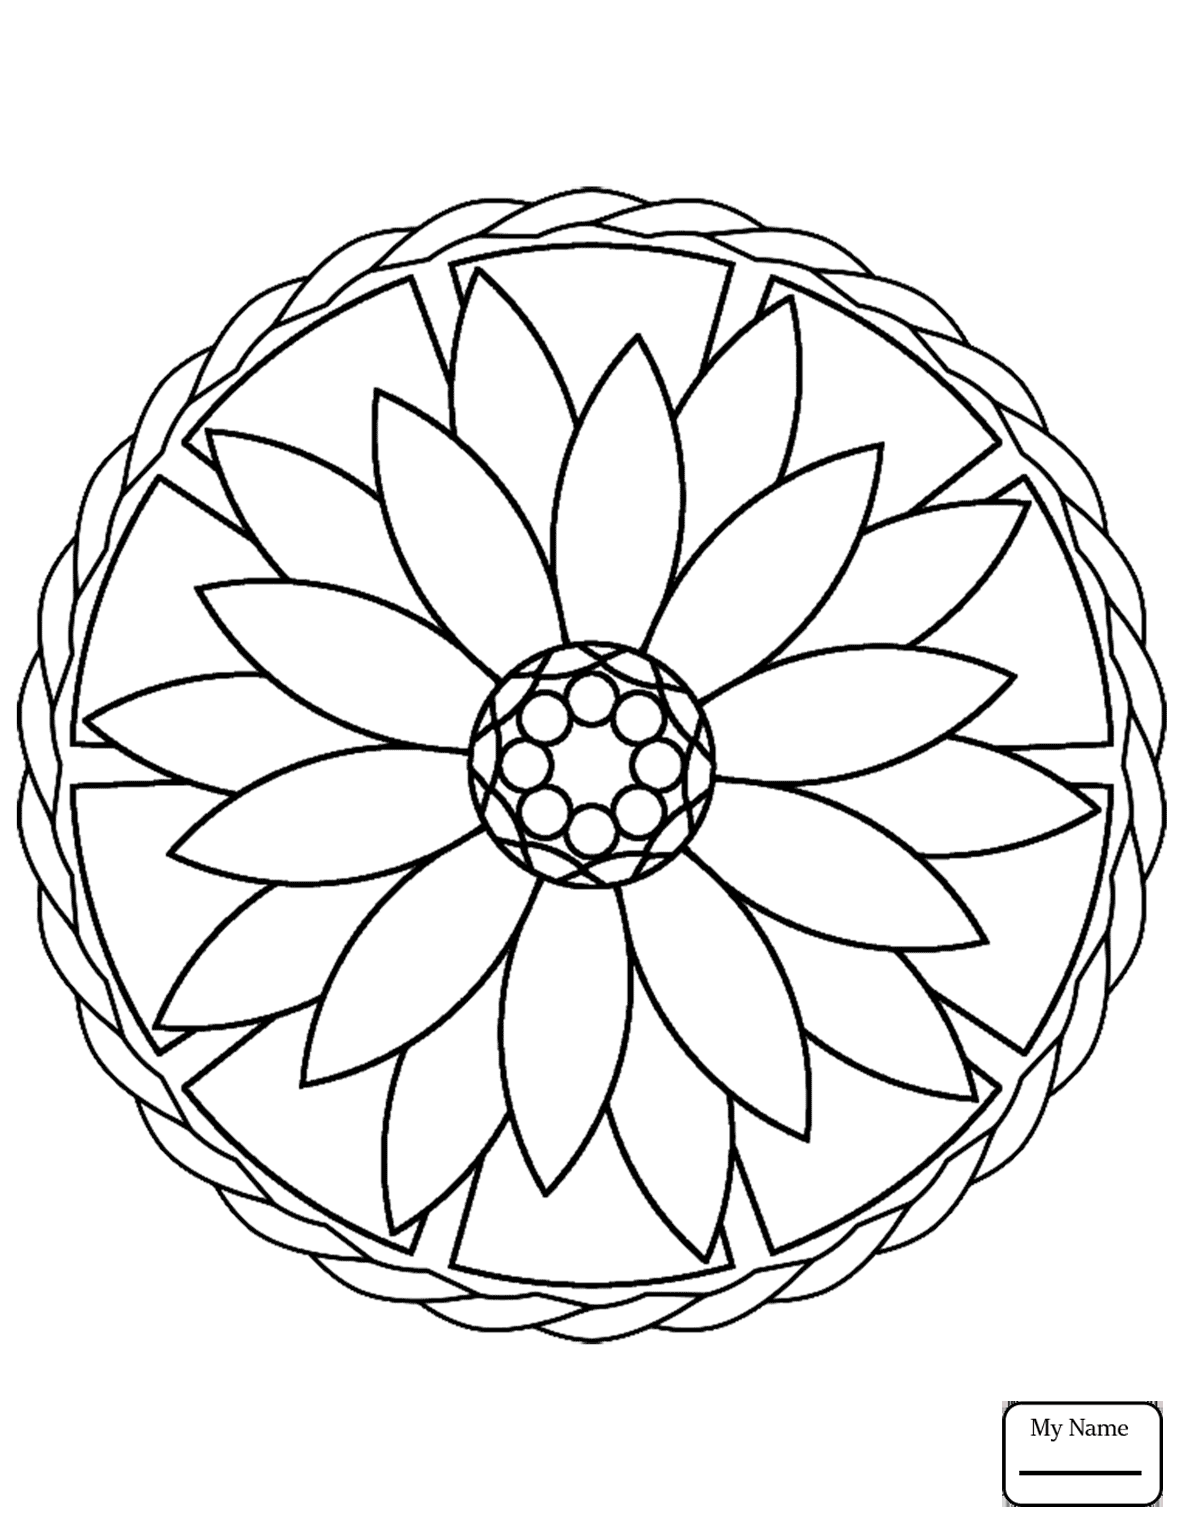 Easy Mandala Coloring Pages At Getcolorings